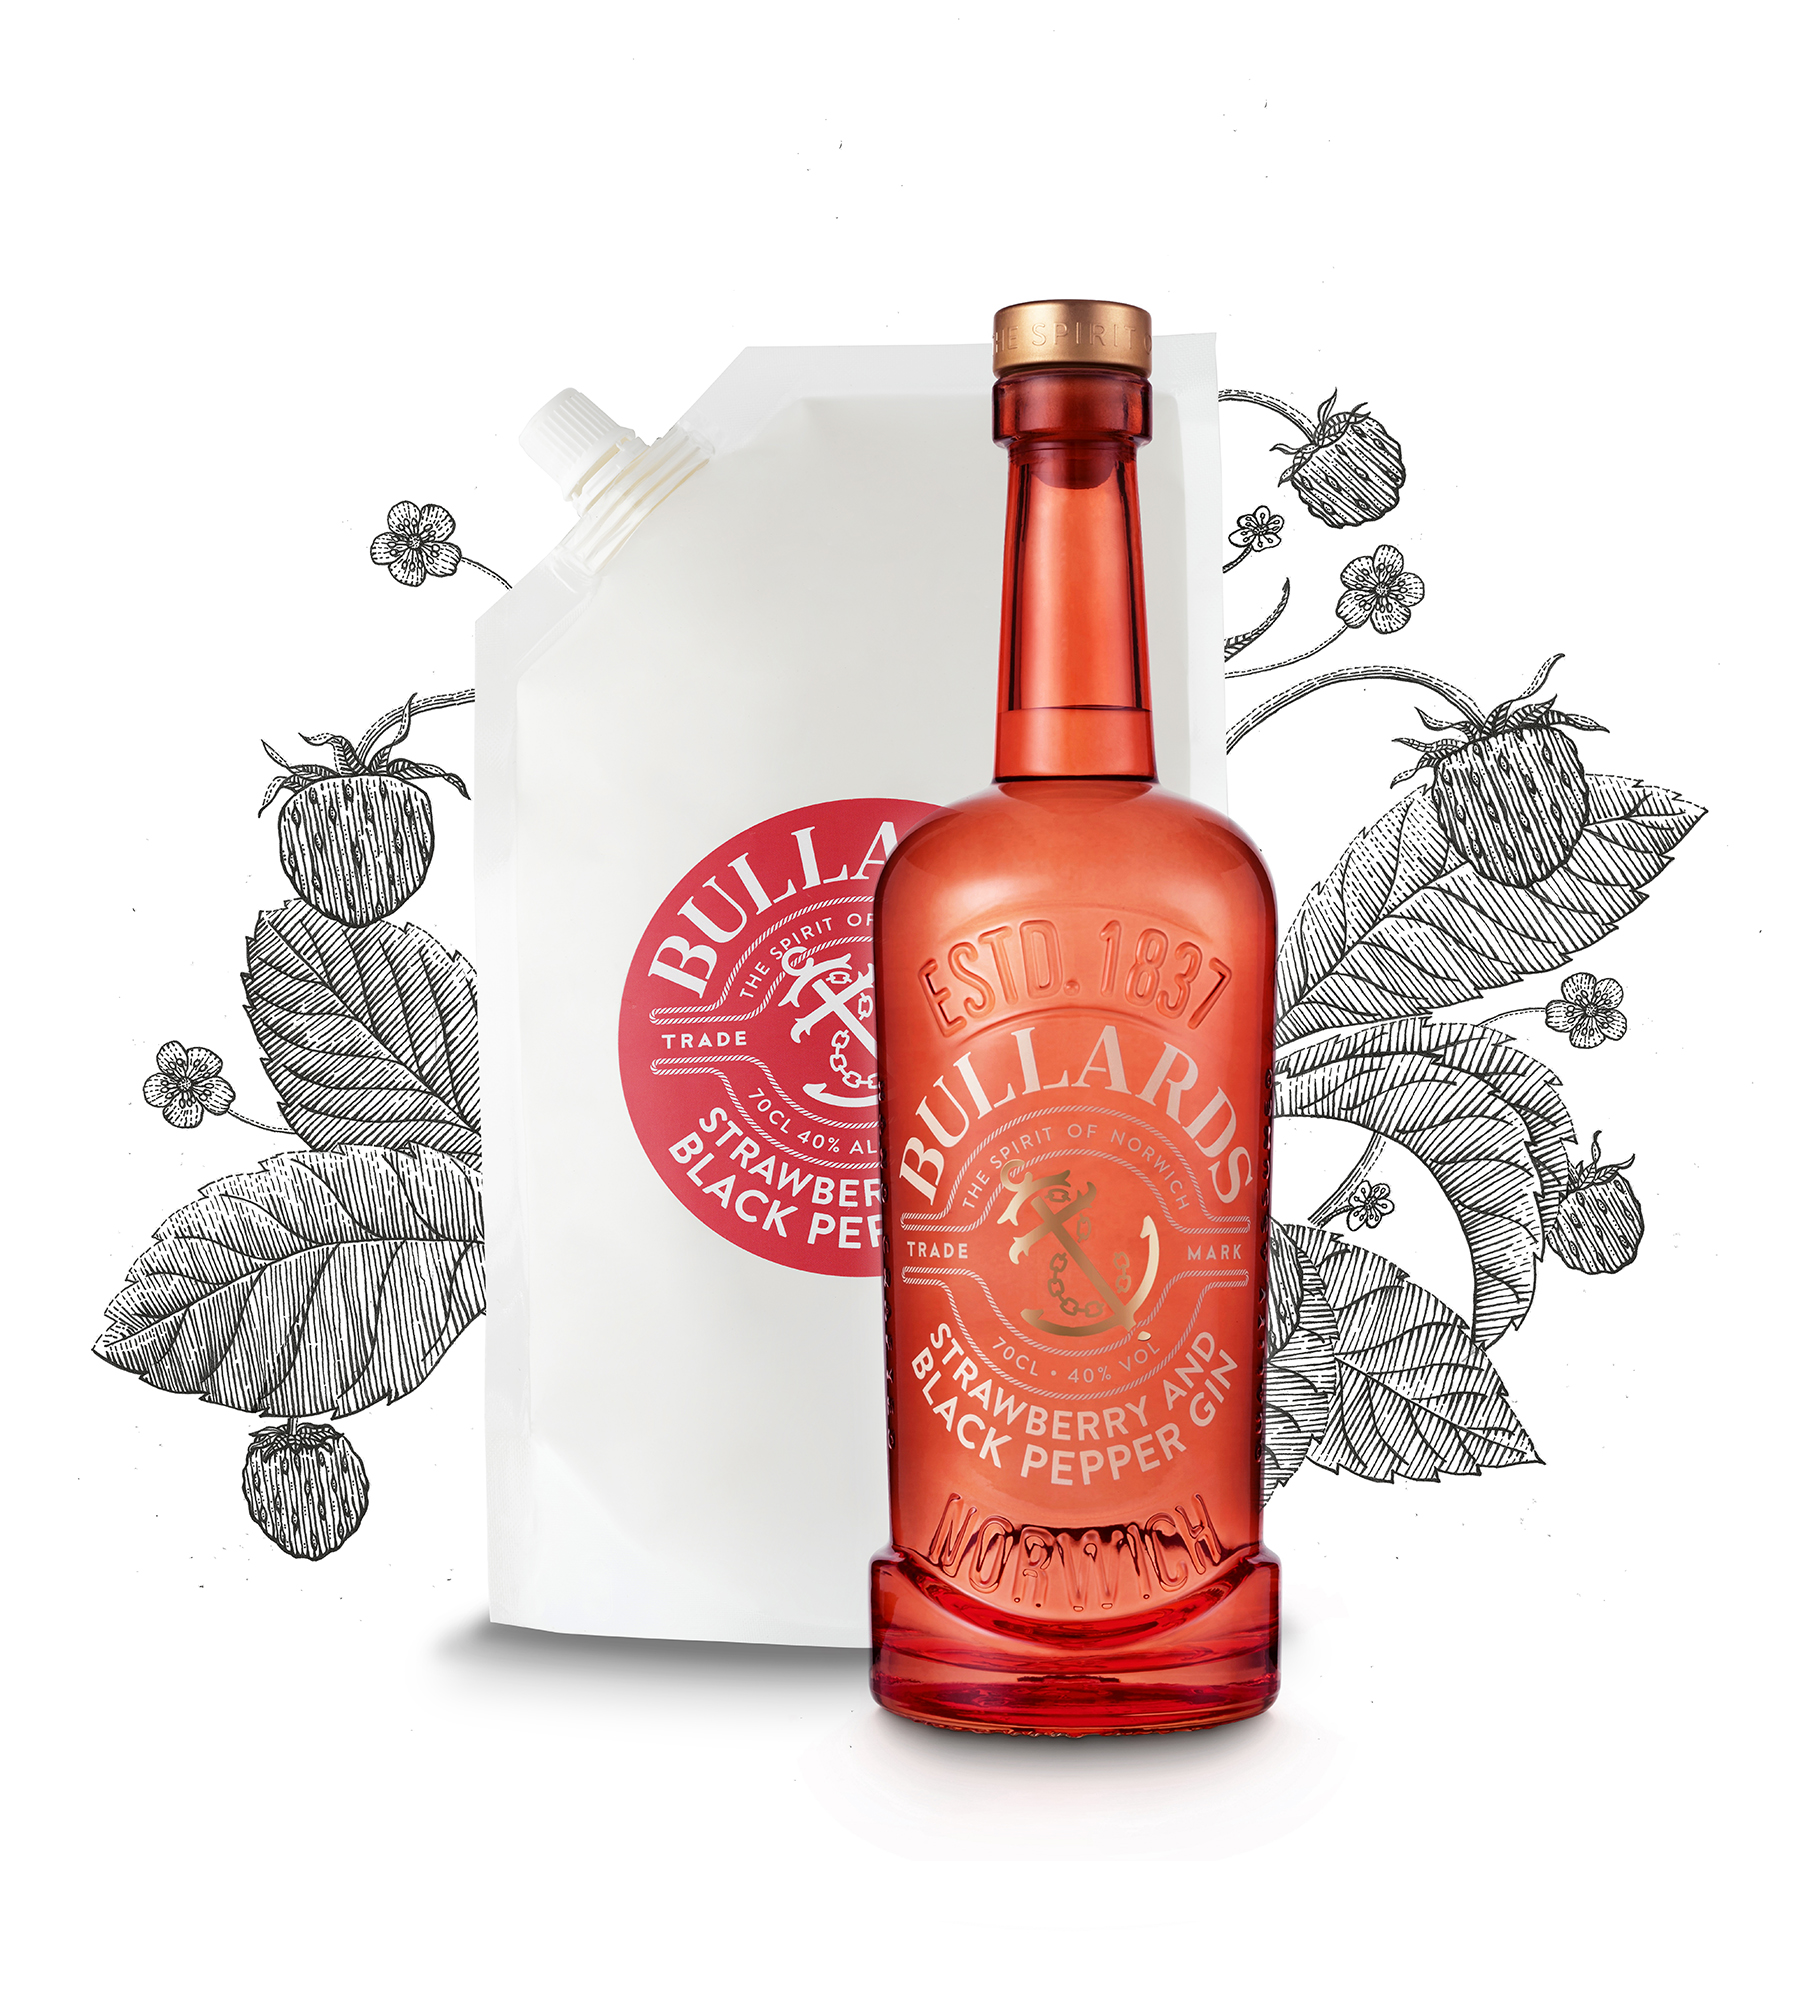 Strawberry and Black pepper Gin Bundle